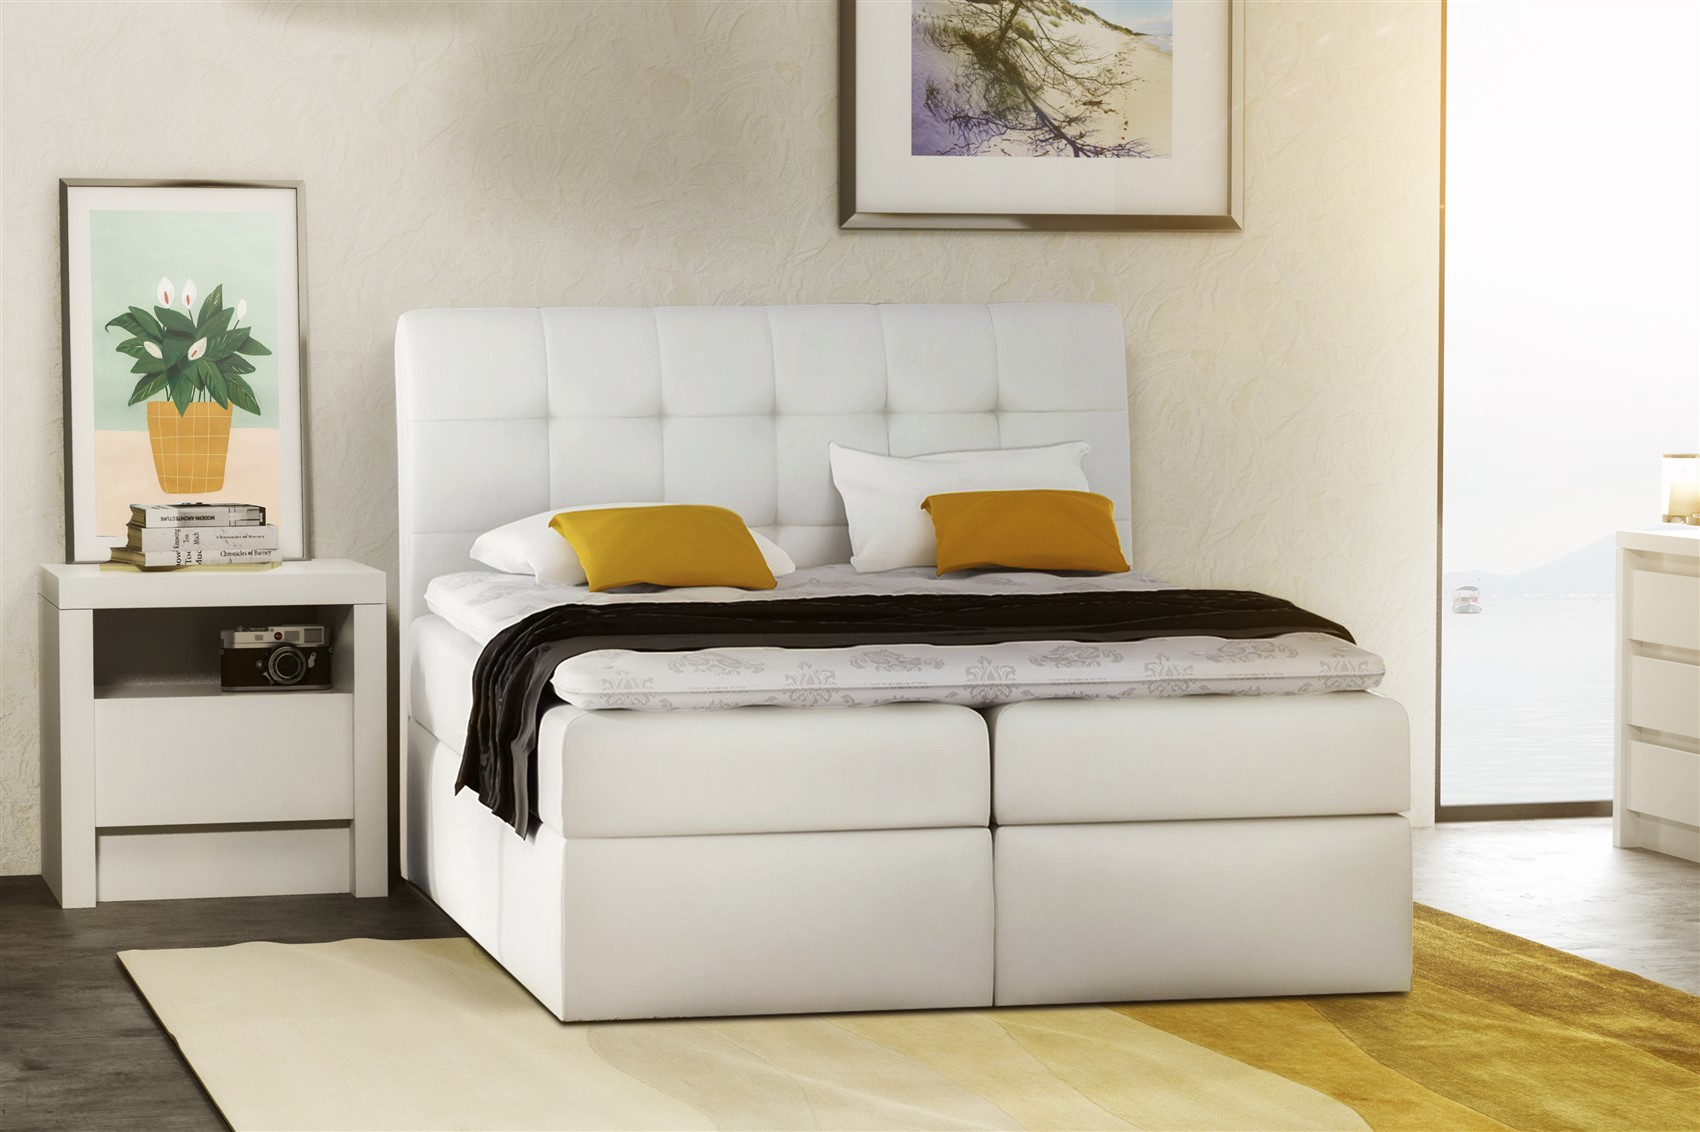 boxspringbett schlafzimmerbett turin kunstleder weiss 140x200 cm fun m bel. Black Bedroom Furniture Sets. Home Design Ideas